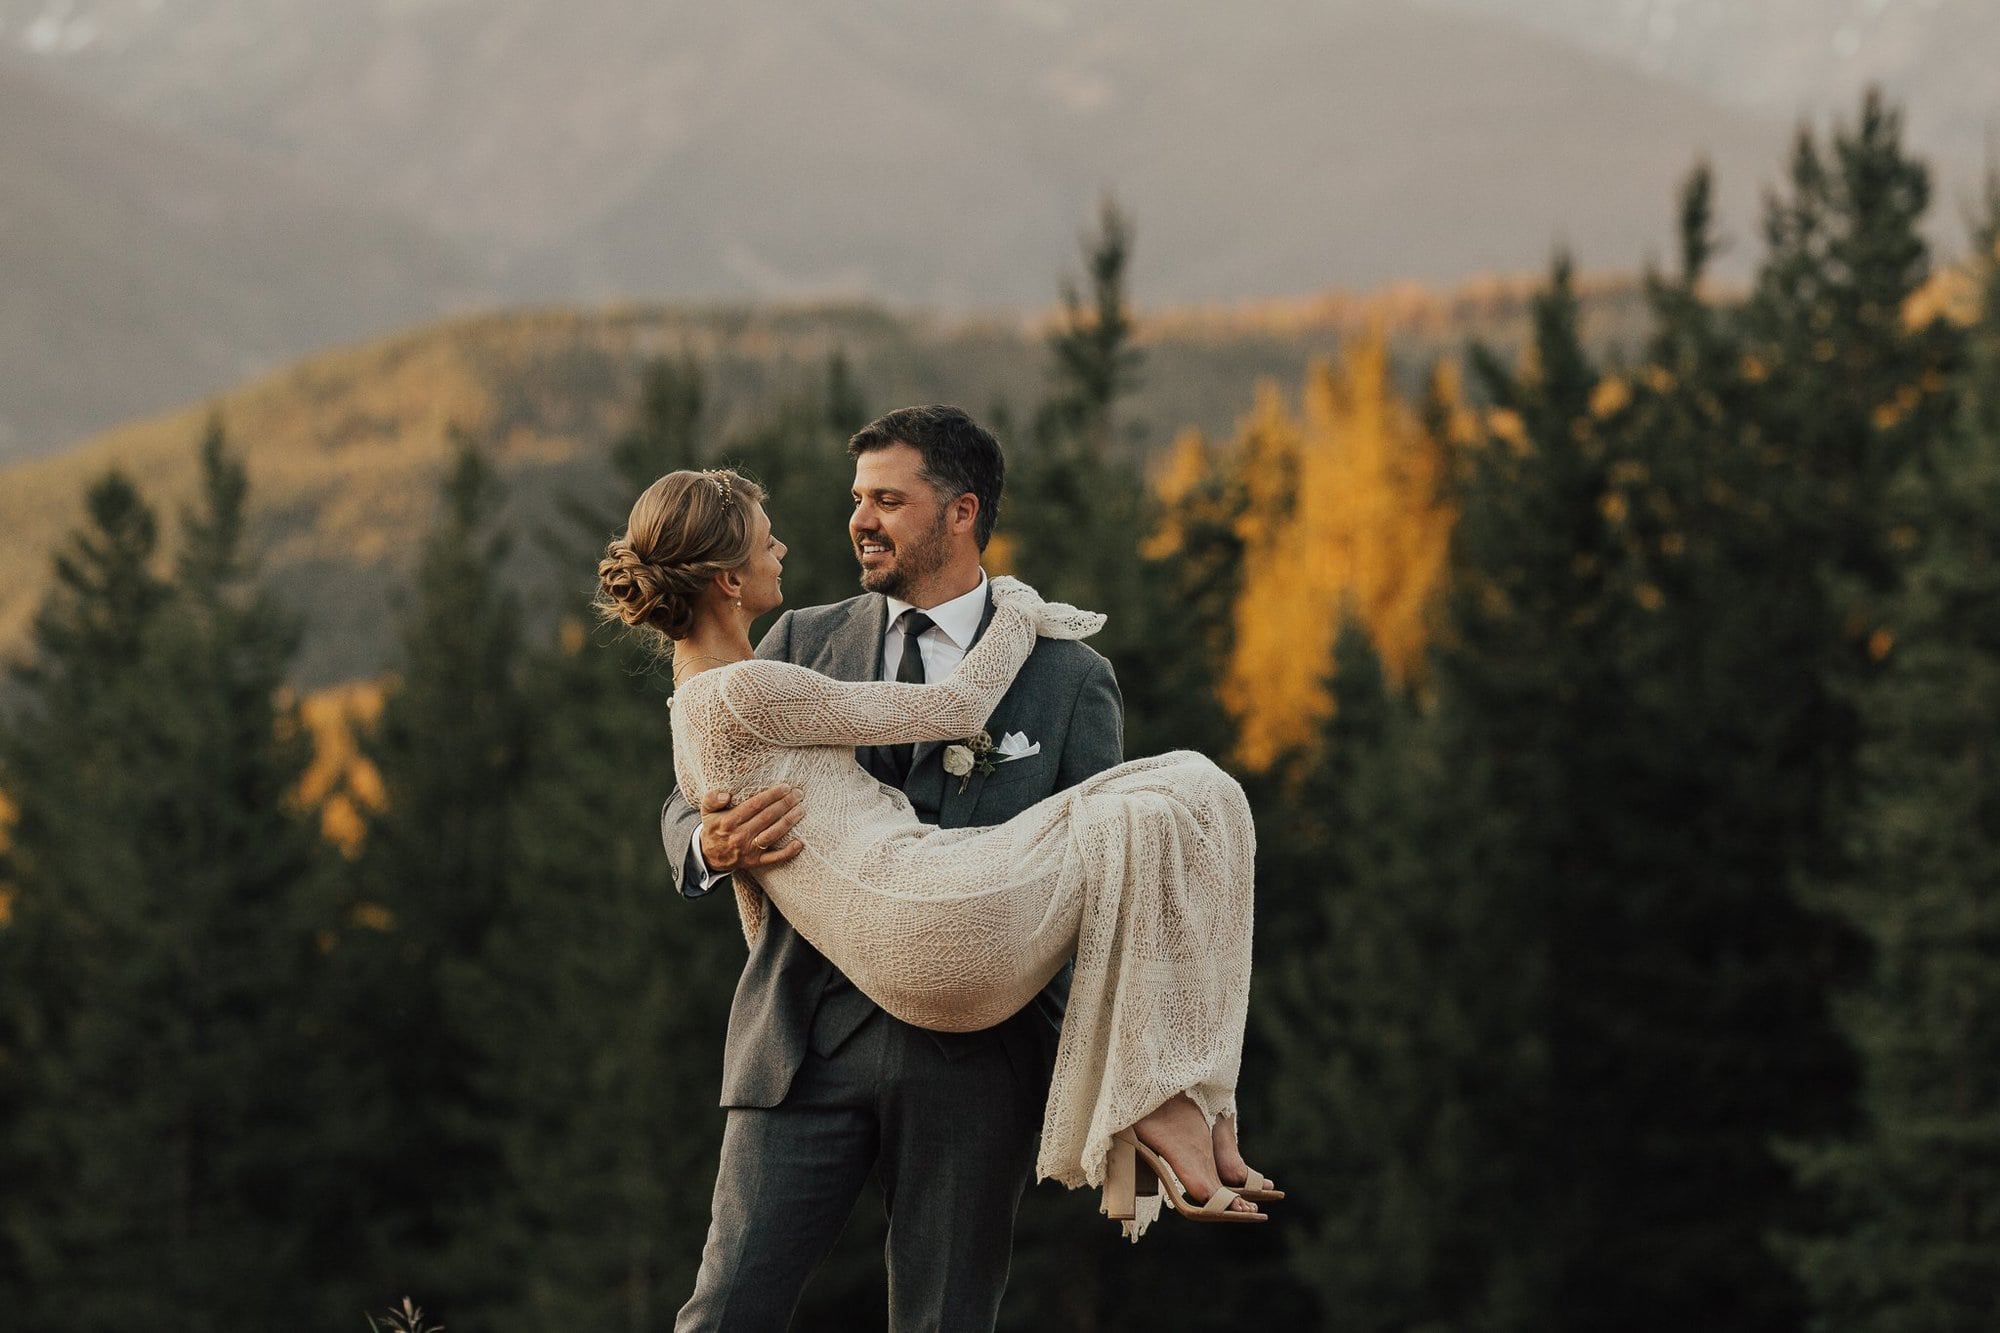 Colorado mountain Wedding Photographer, Vail, Colorado, 10th Mile Station, Justyna E Butler Photography